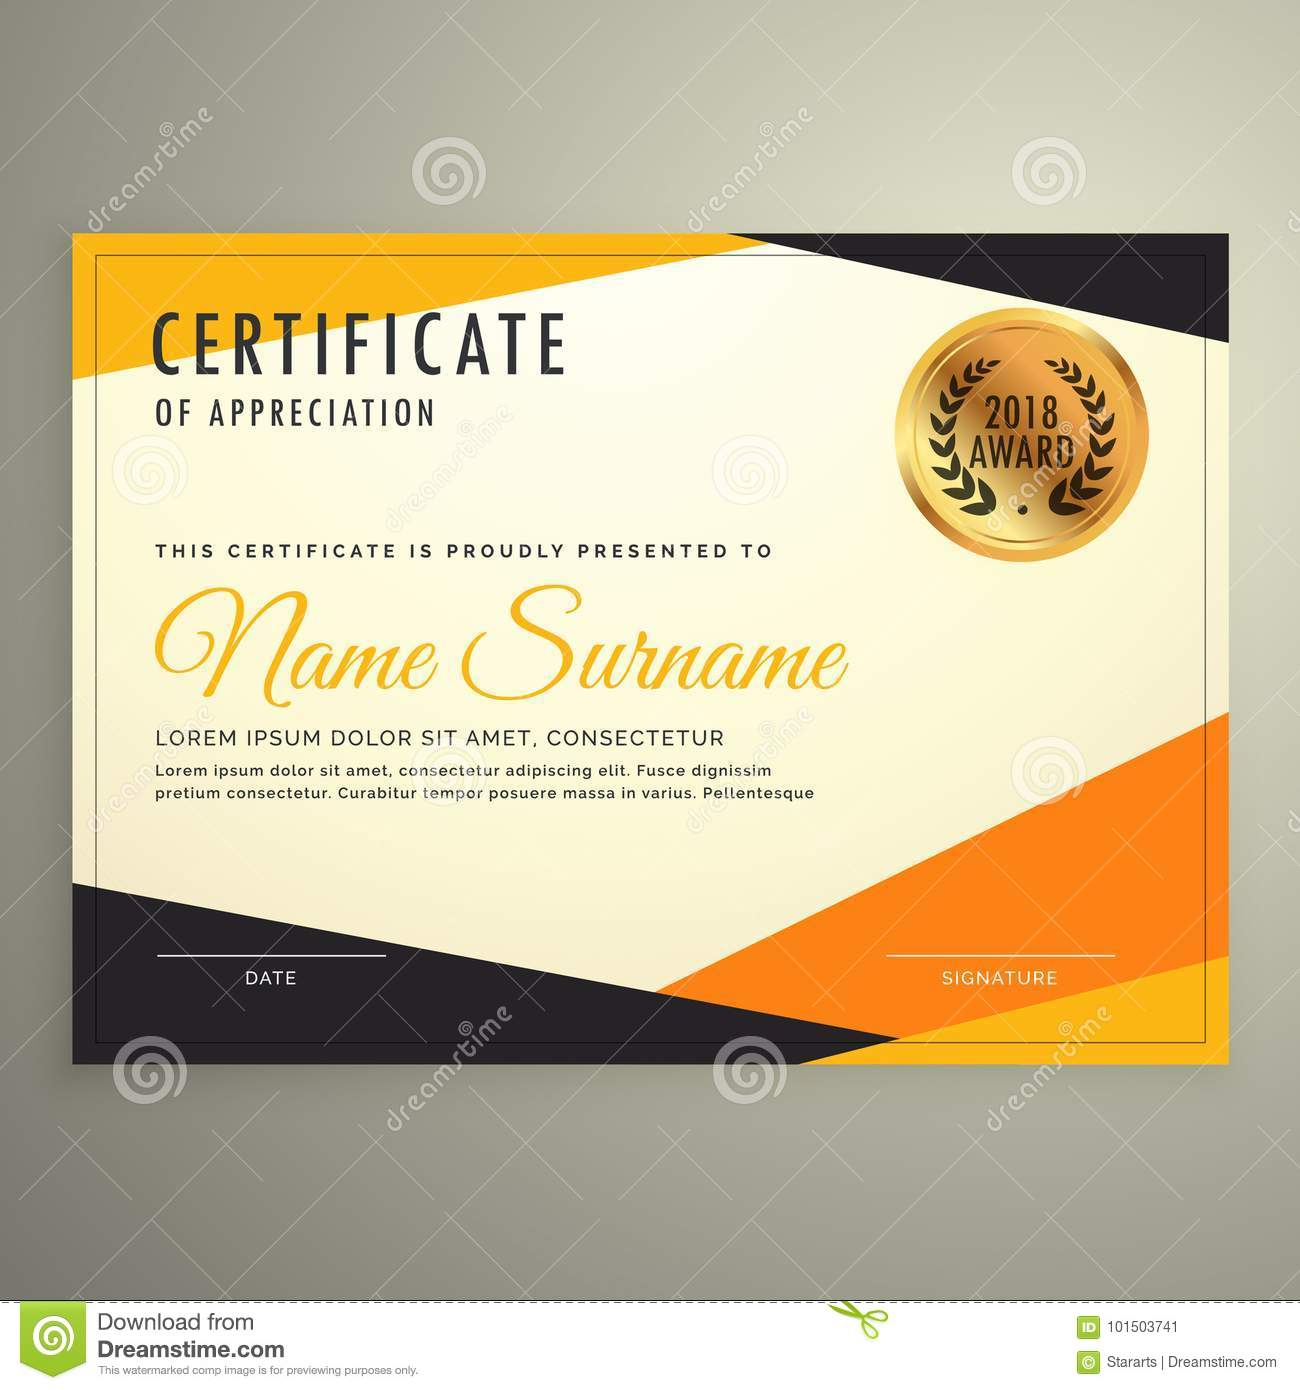 Certificate Design Template With Clean Modern Orange And Black S Within Award Certificate Design Template